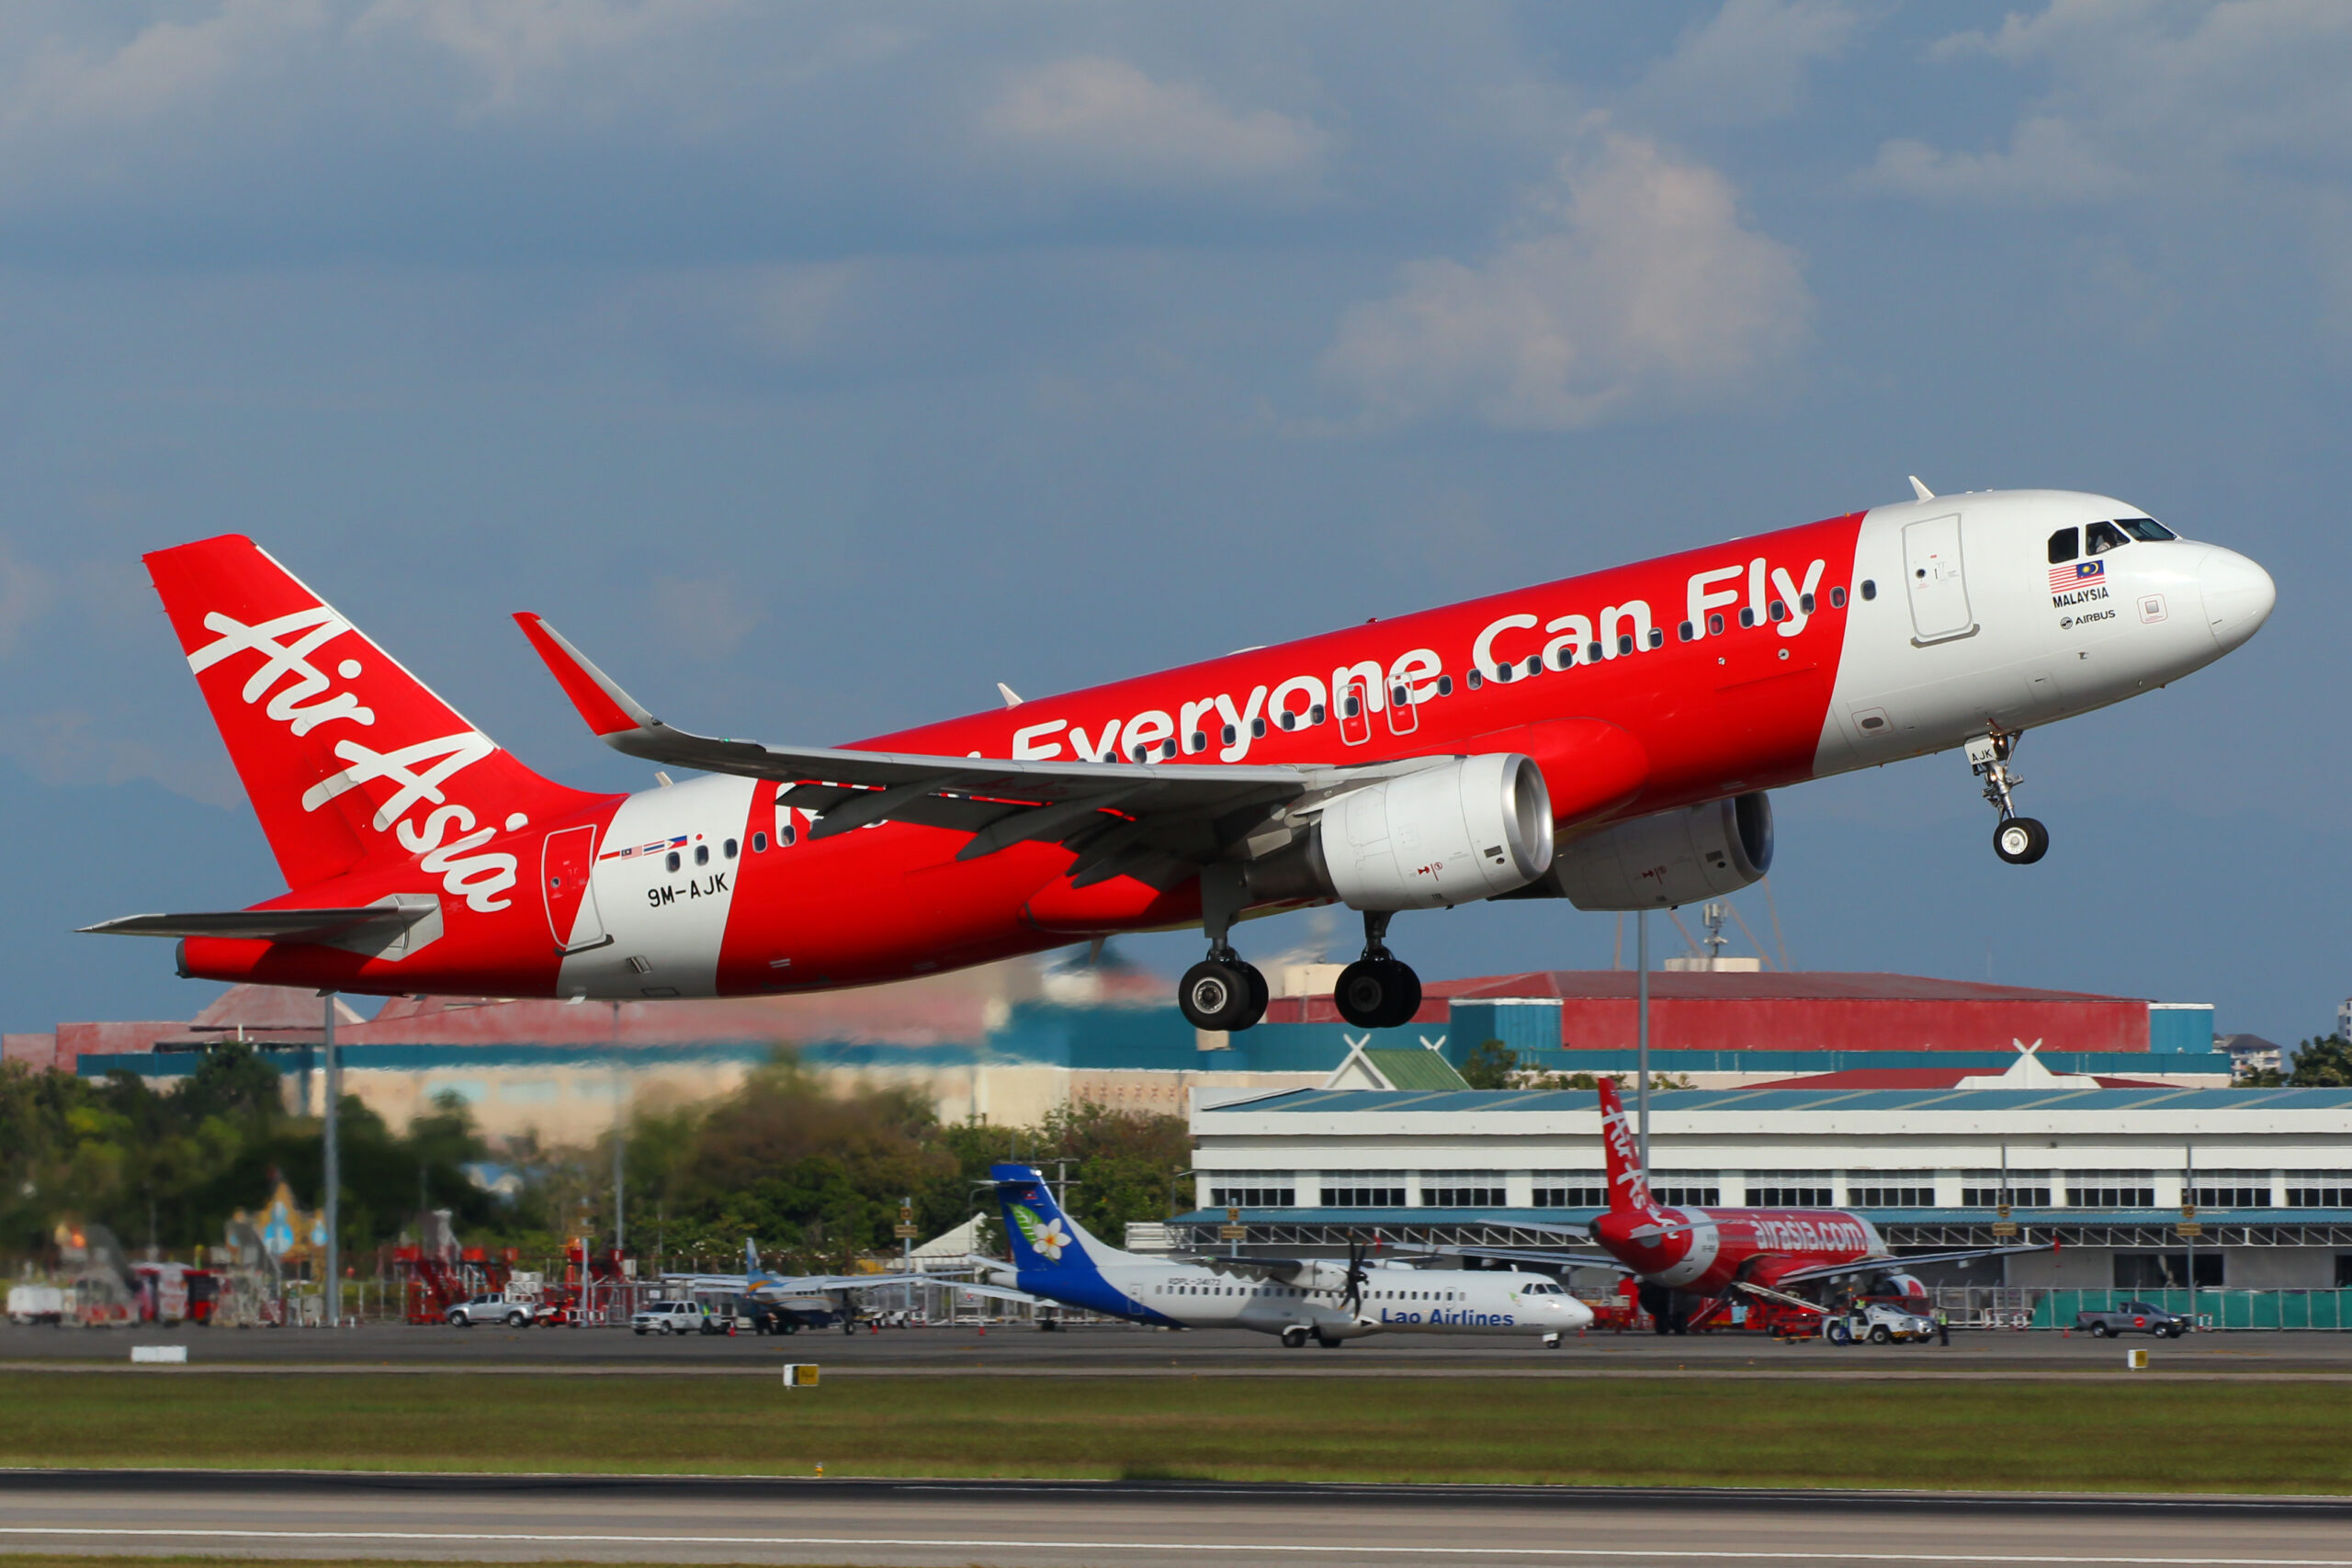 Low cost carrier, Air Asia, taking off.